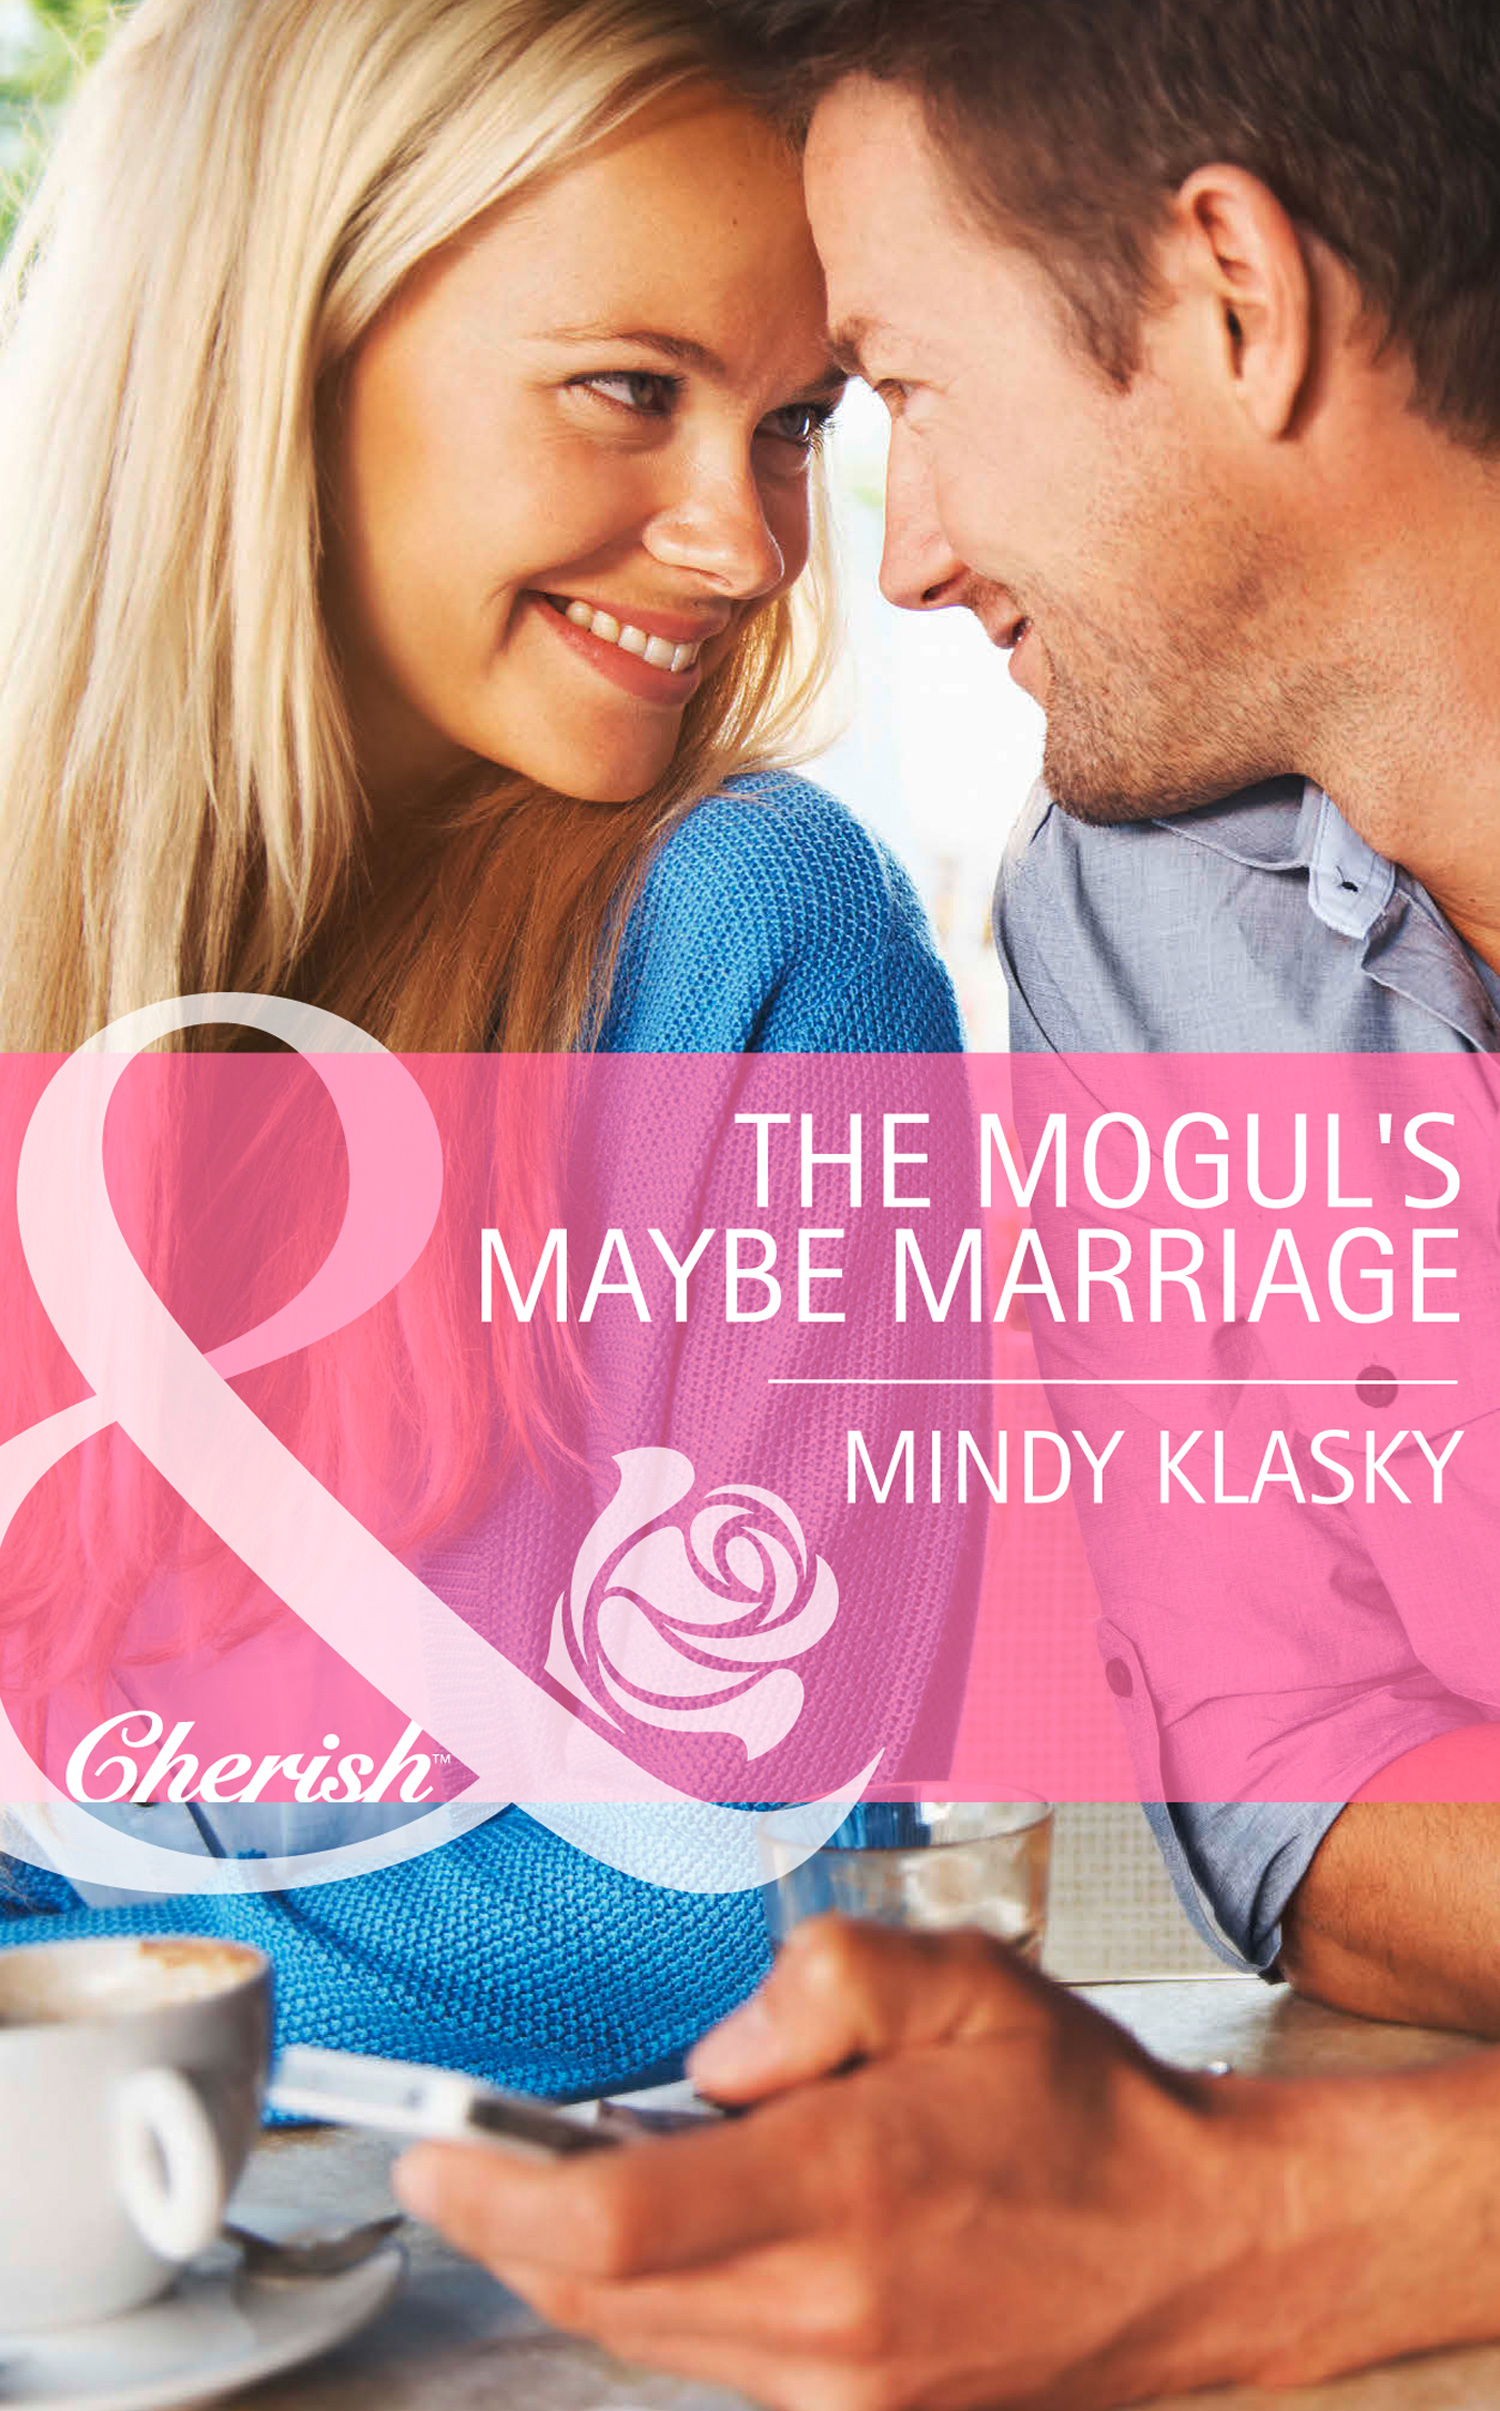 The Mogul's Maybe Marriage